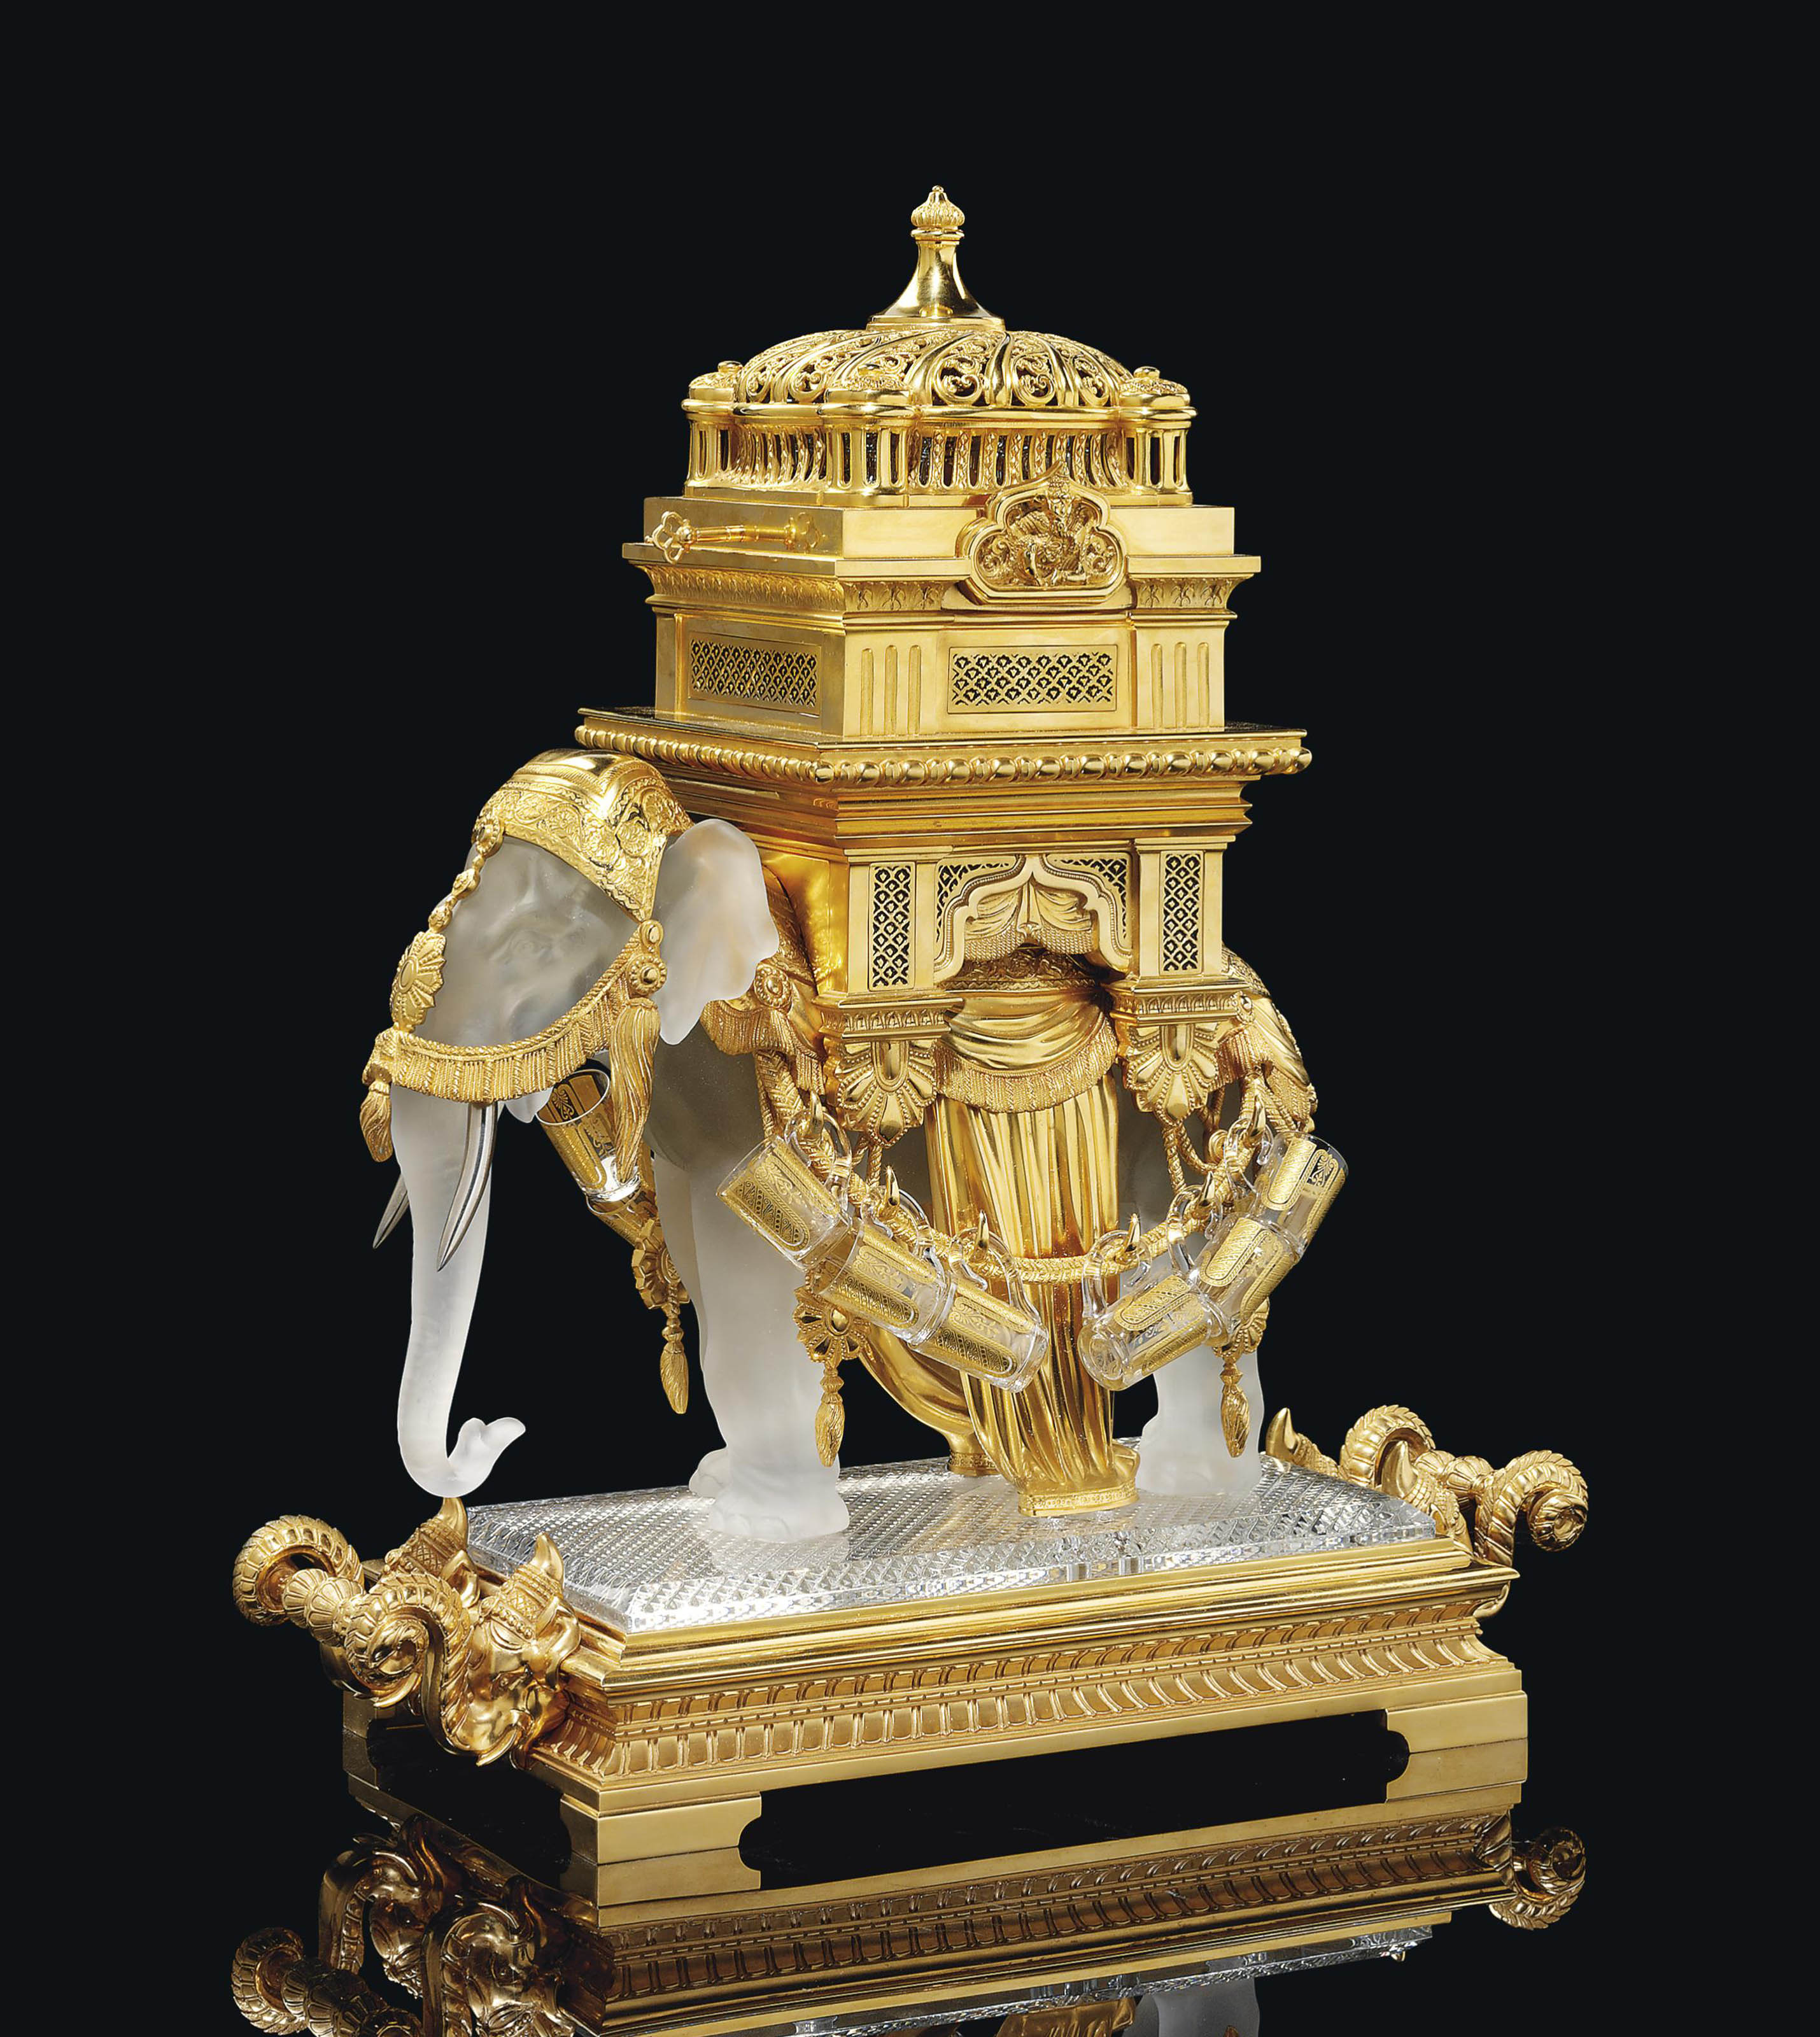 A FRENCH GILT-BRONZE, CRYSTAL AND CUT GLASS 'ELEPHANT' TANTALUS